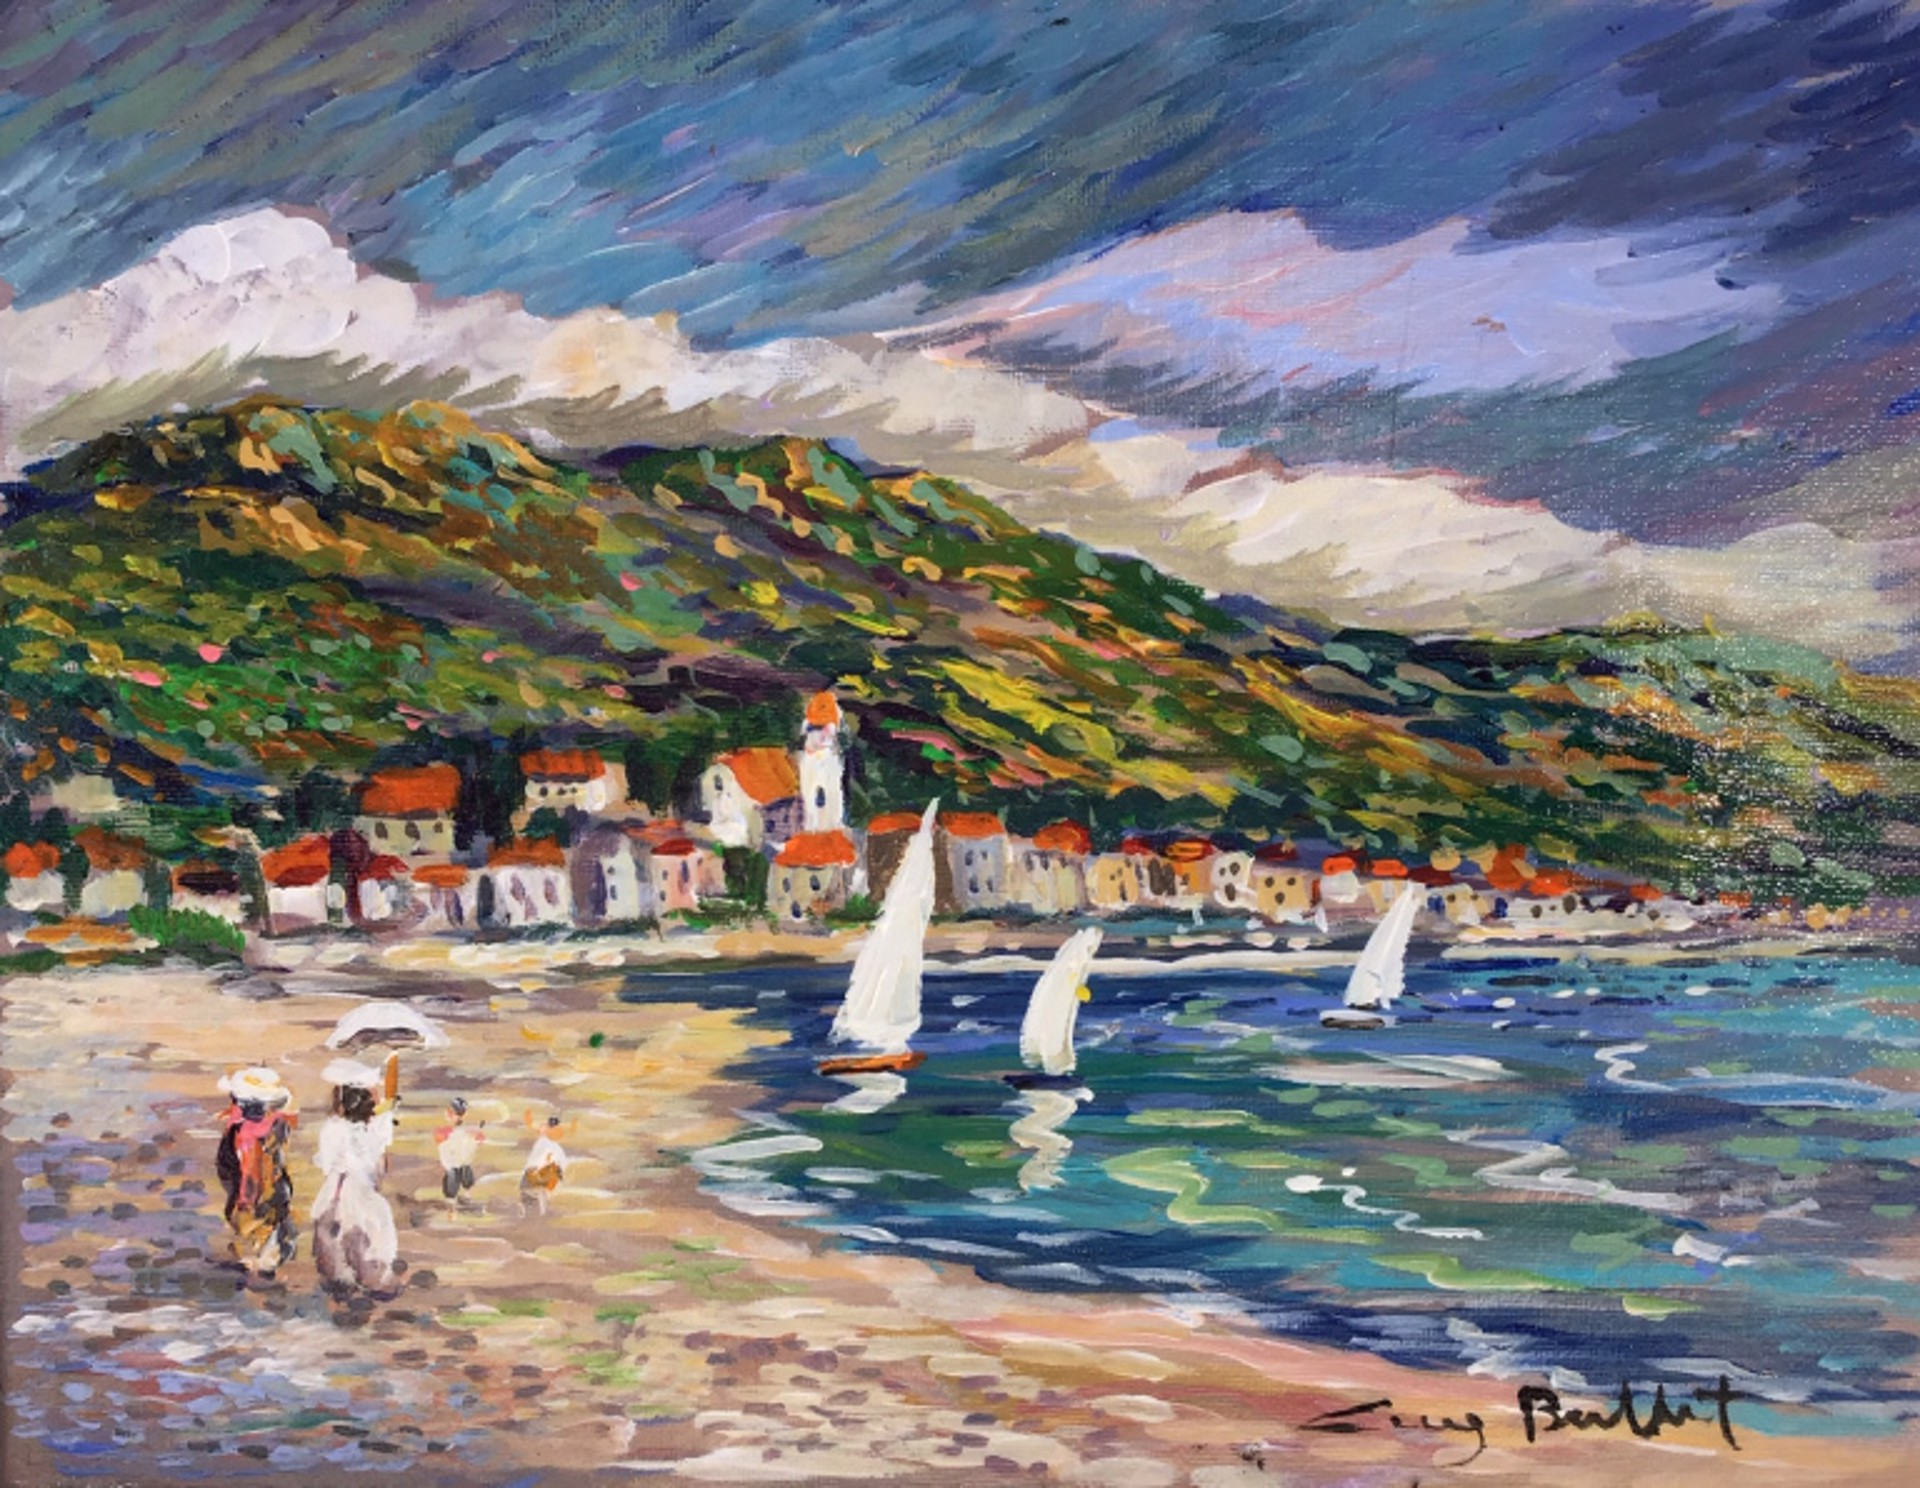 Le Levandou; A Stroll On The Beach by Guy Buffet